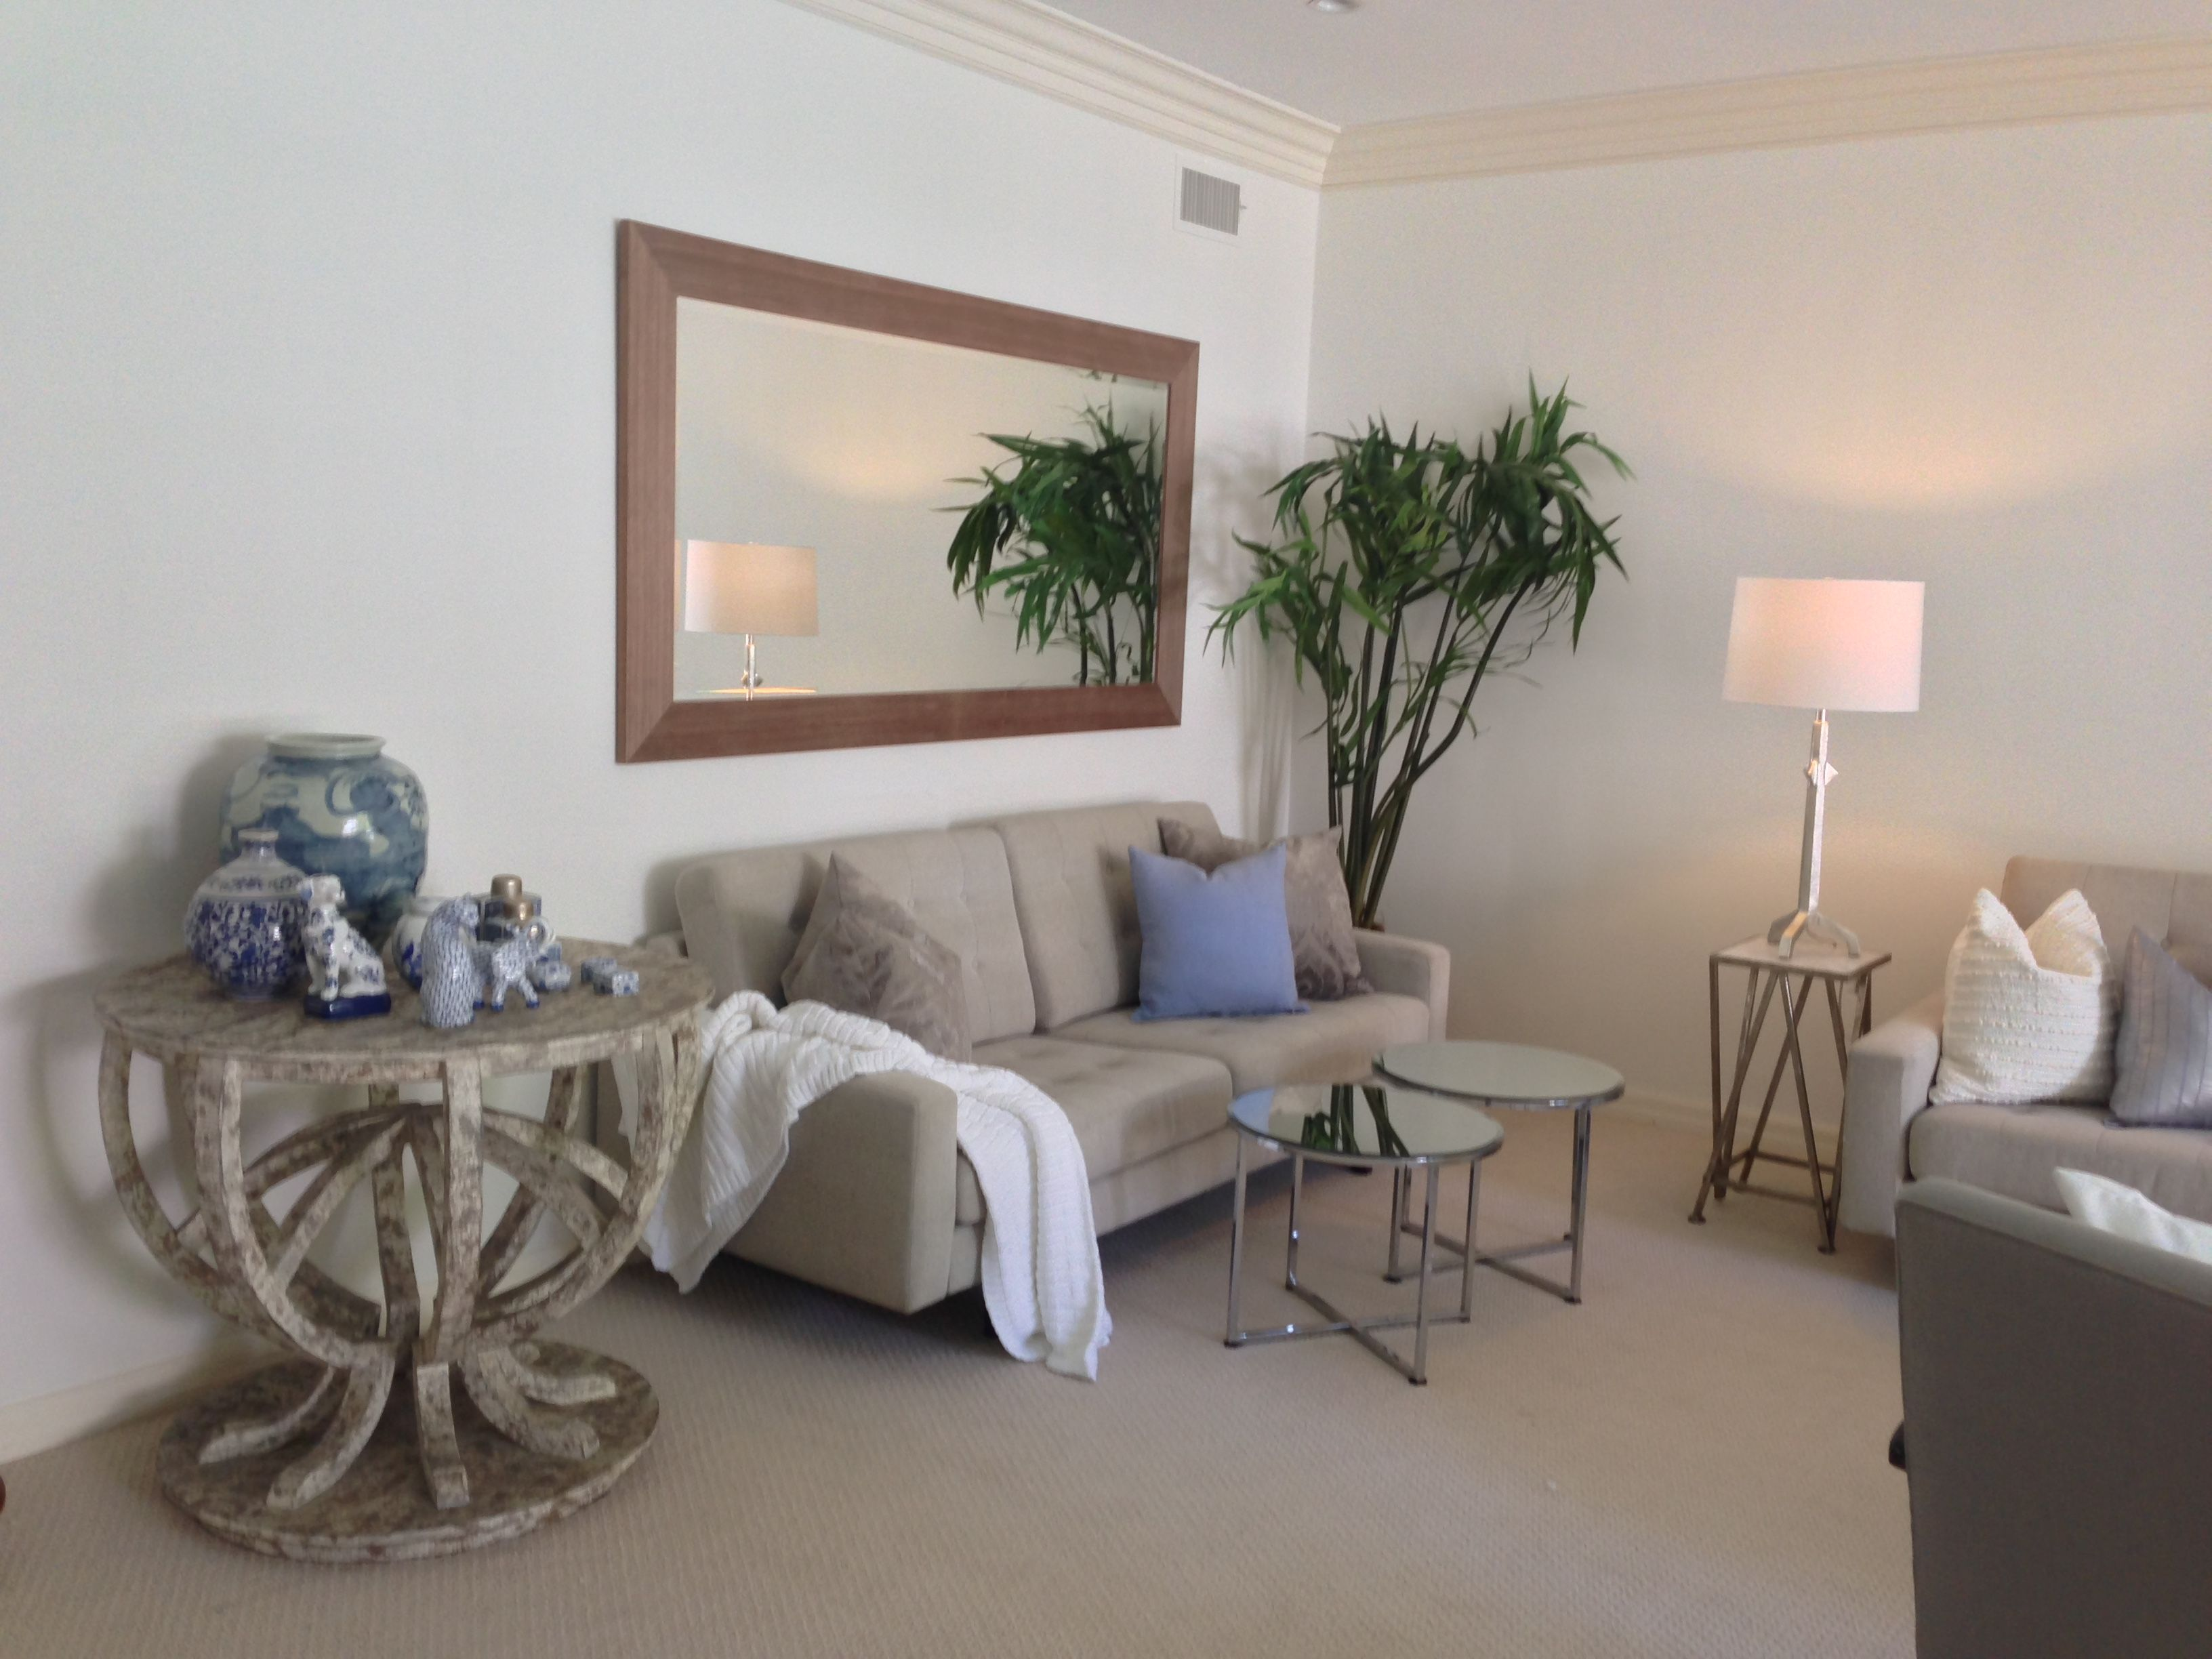 Encino, CA staged home